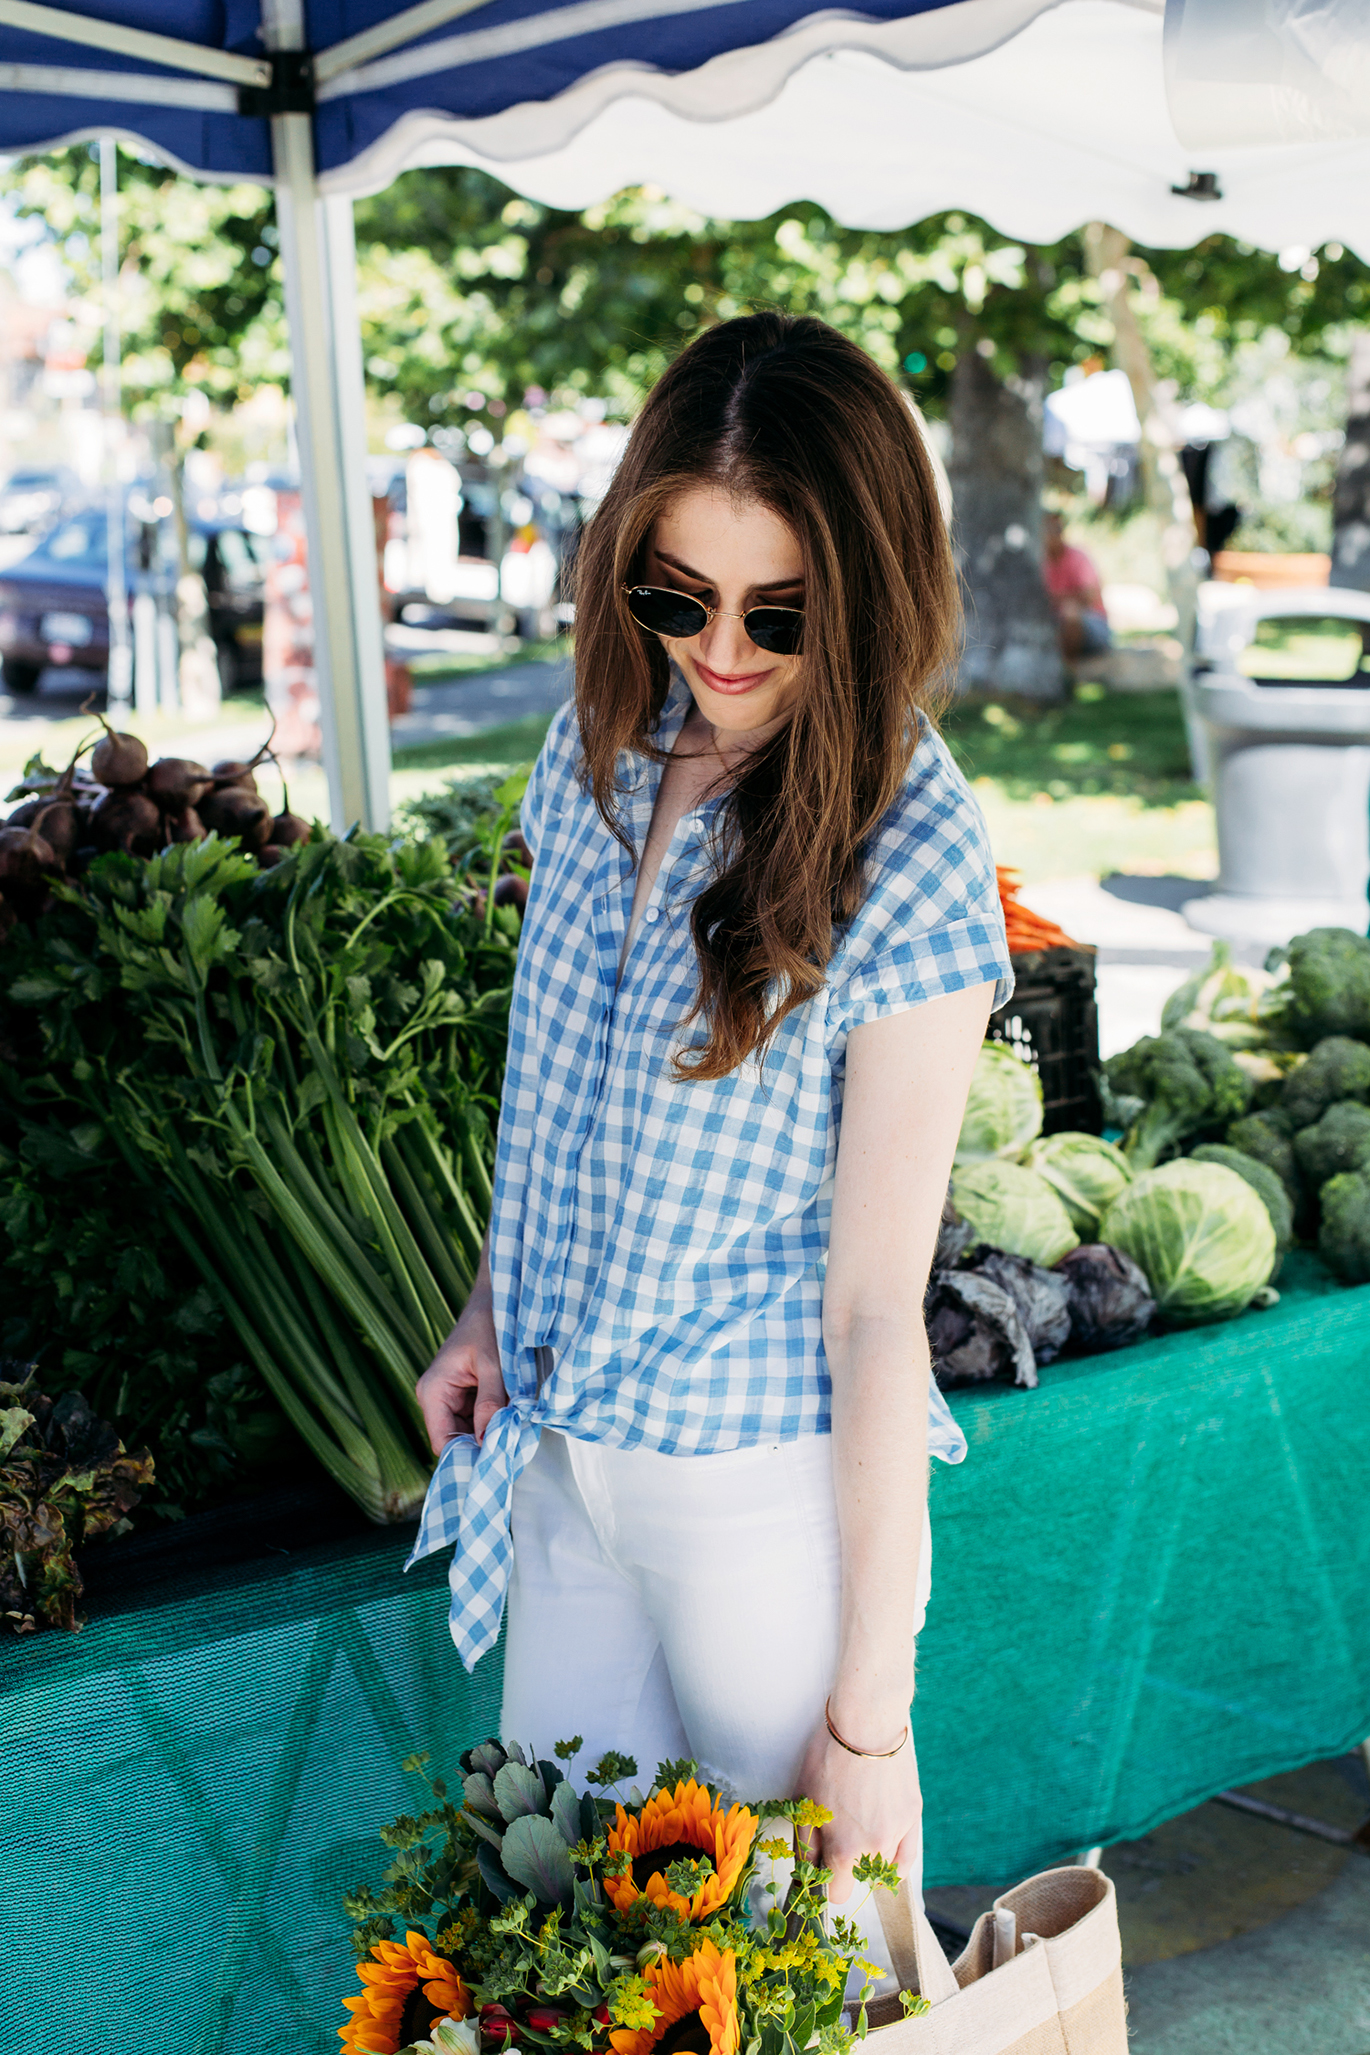 Blue and white gingham top